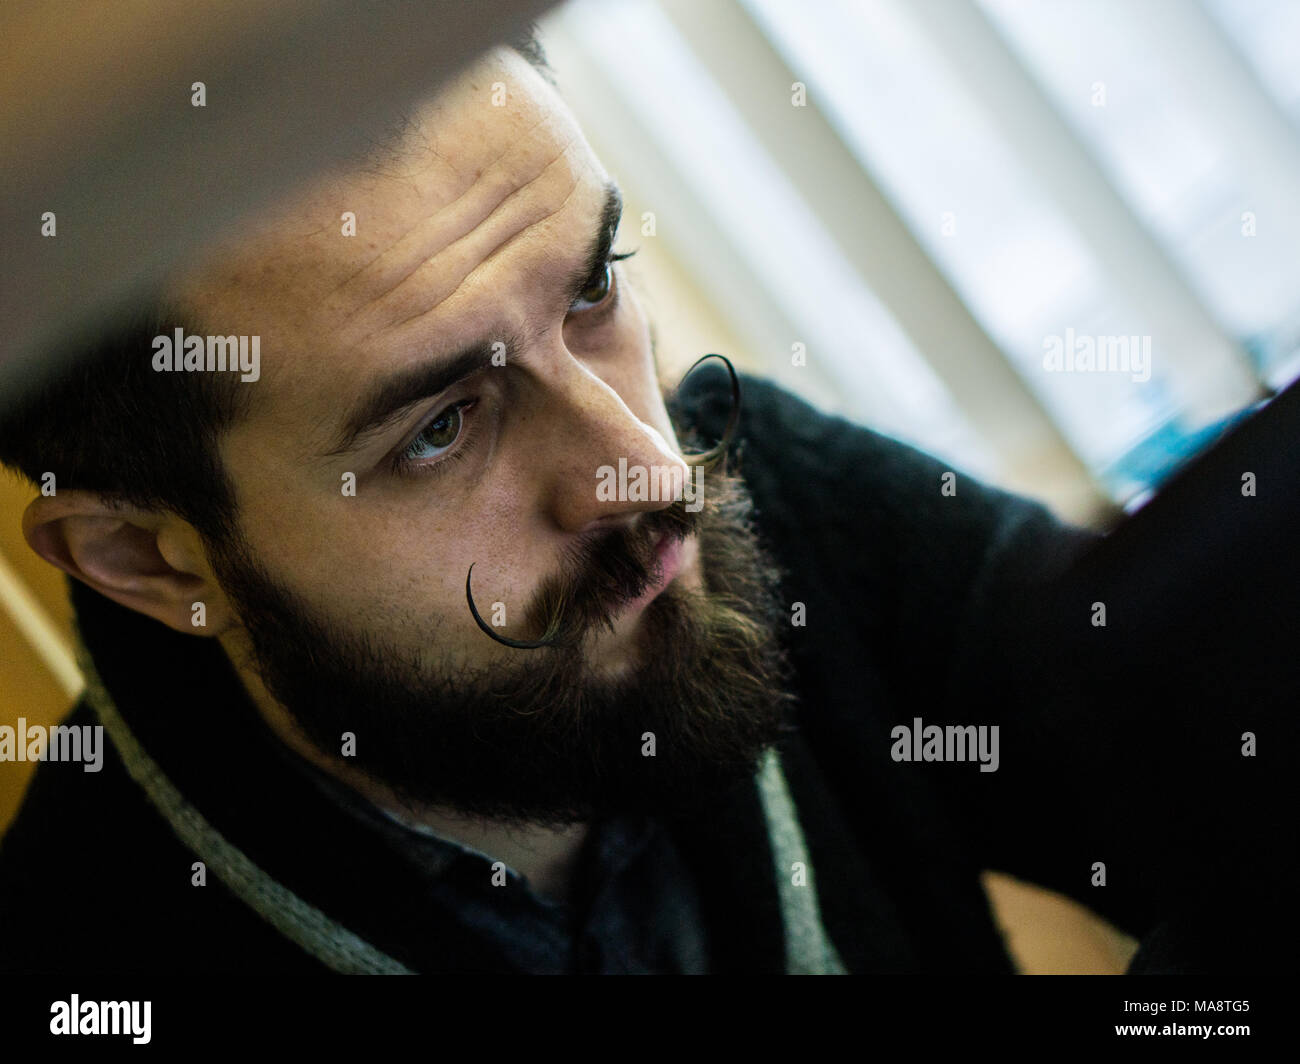 Modern, Expressive Bearded Office Clerk with Mustages Bored to Work in Office - Stock Image